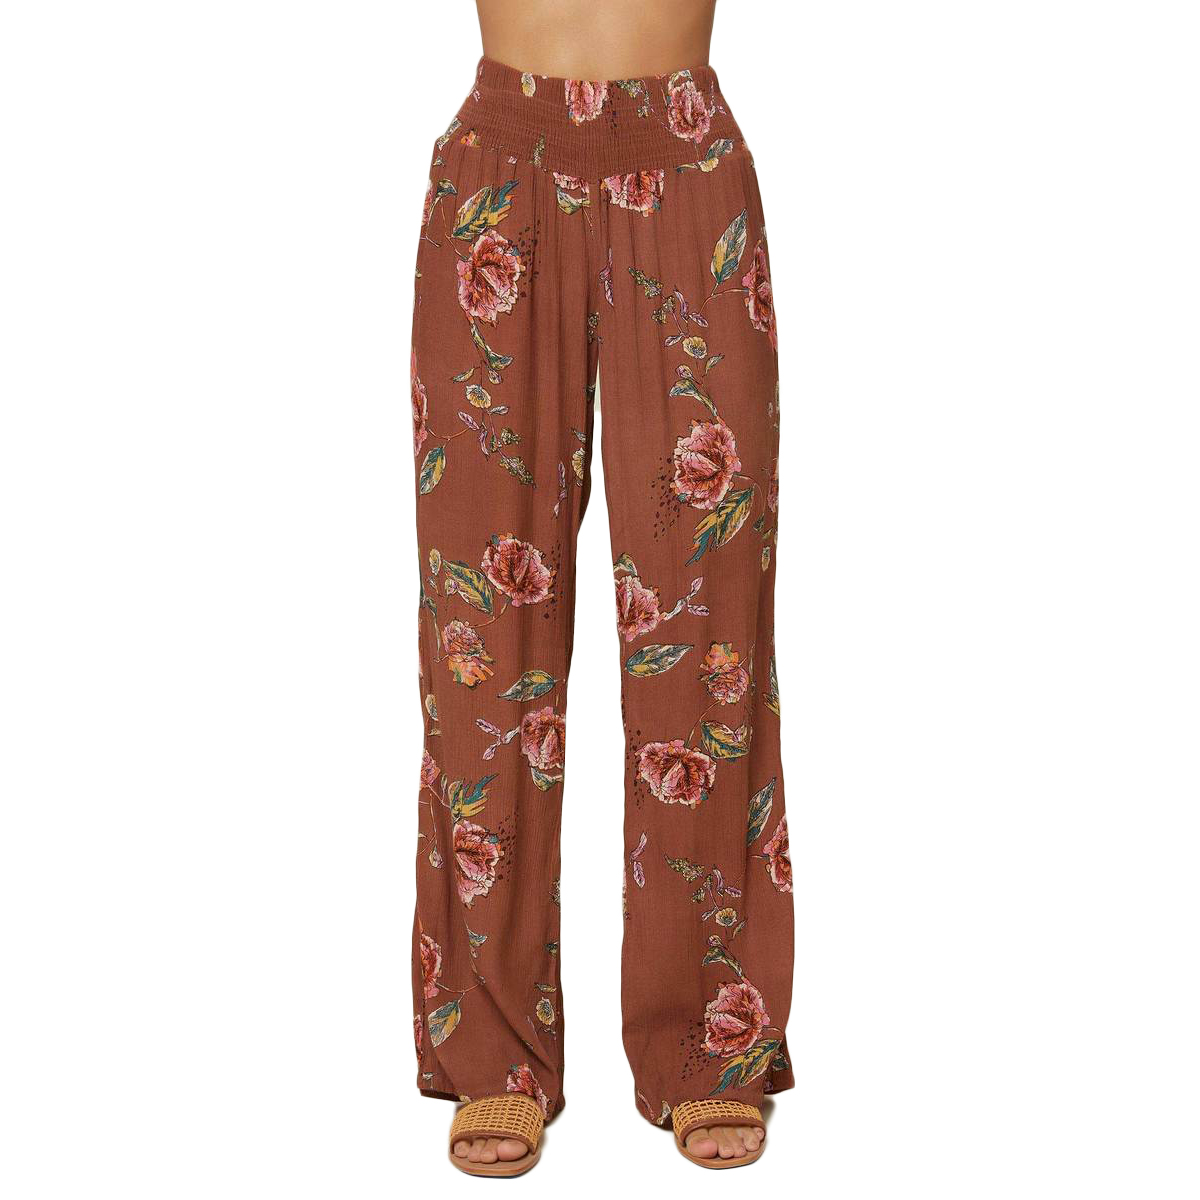 O'neill Women's Johnny Floral Pants - Brown, S